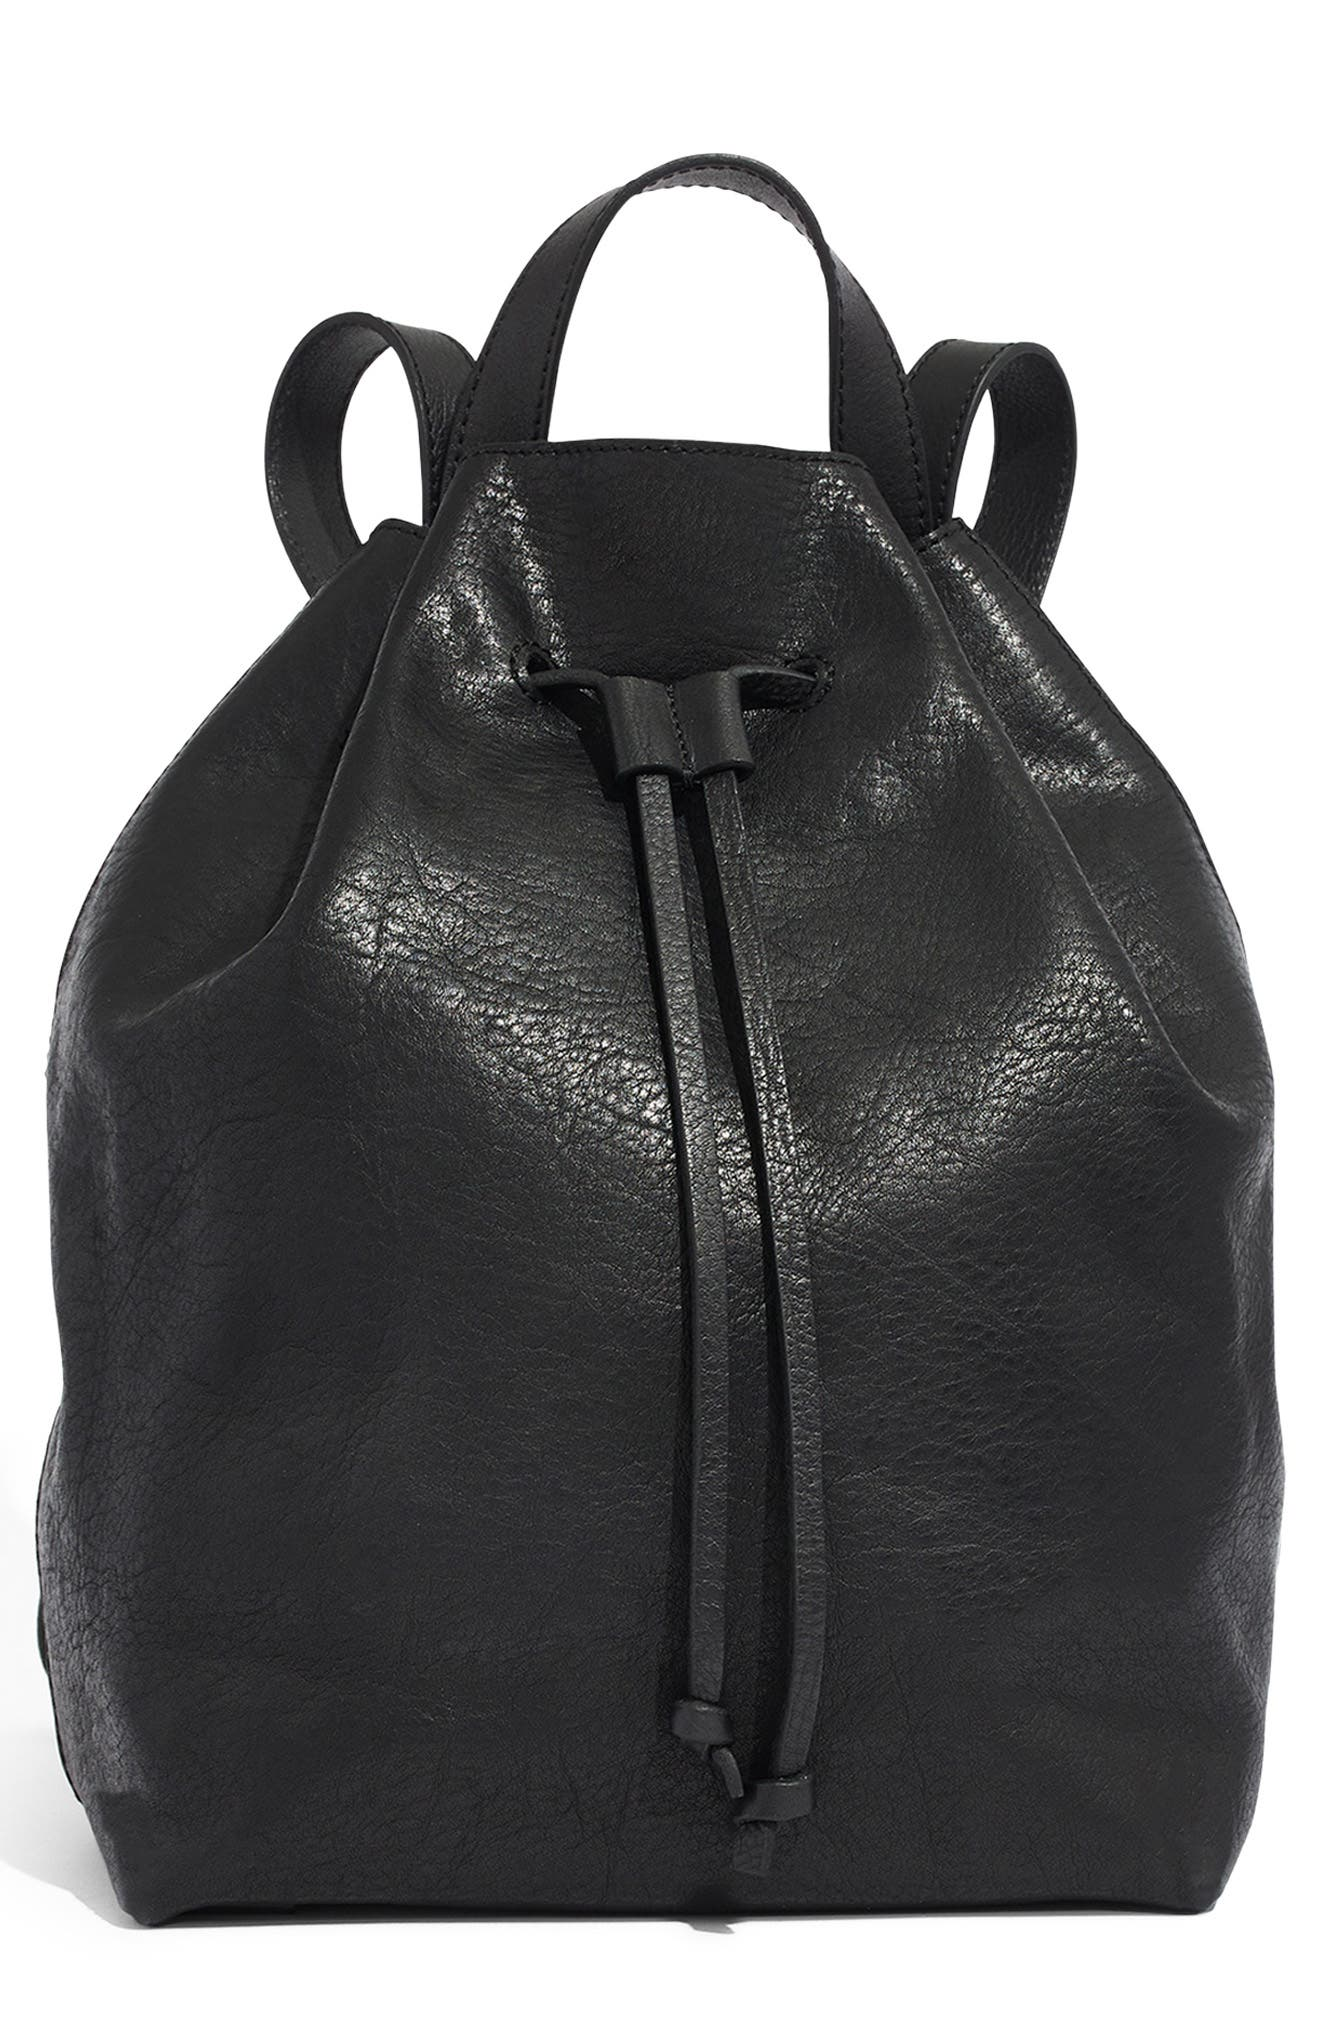 Somerset Leather Backpack,                             Main thumbnail 1, color,                             001